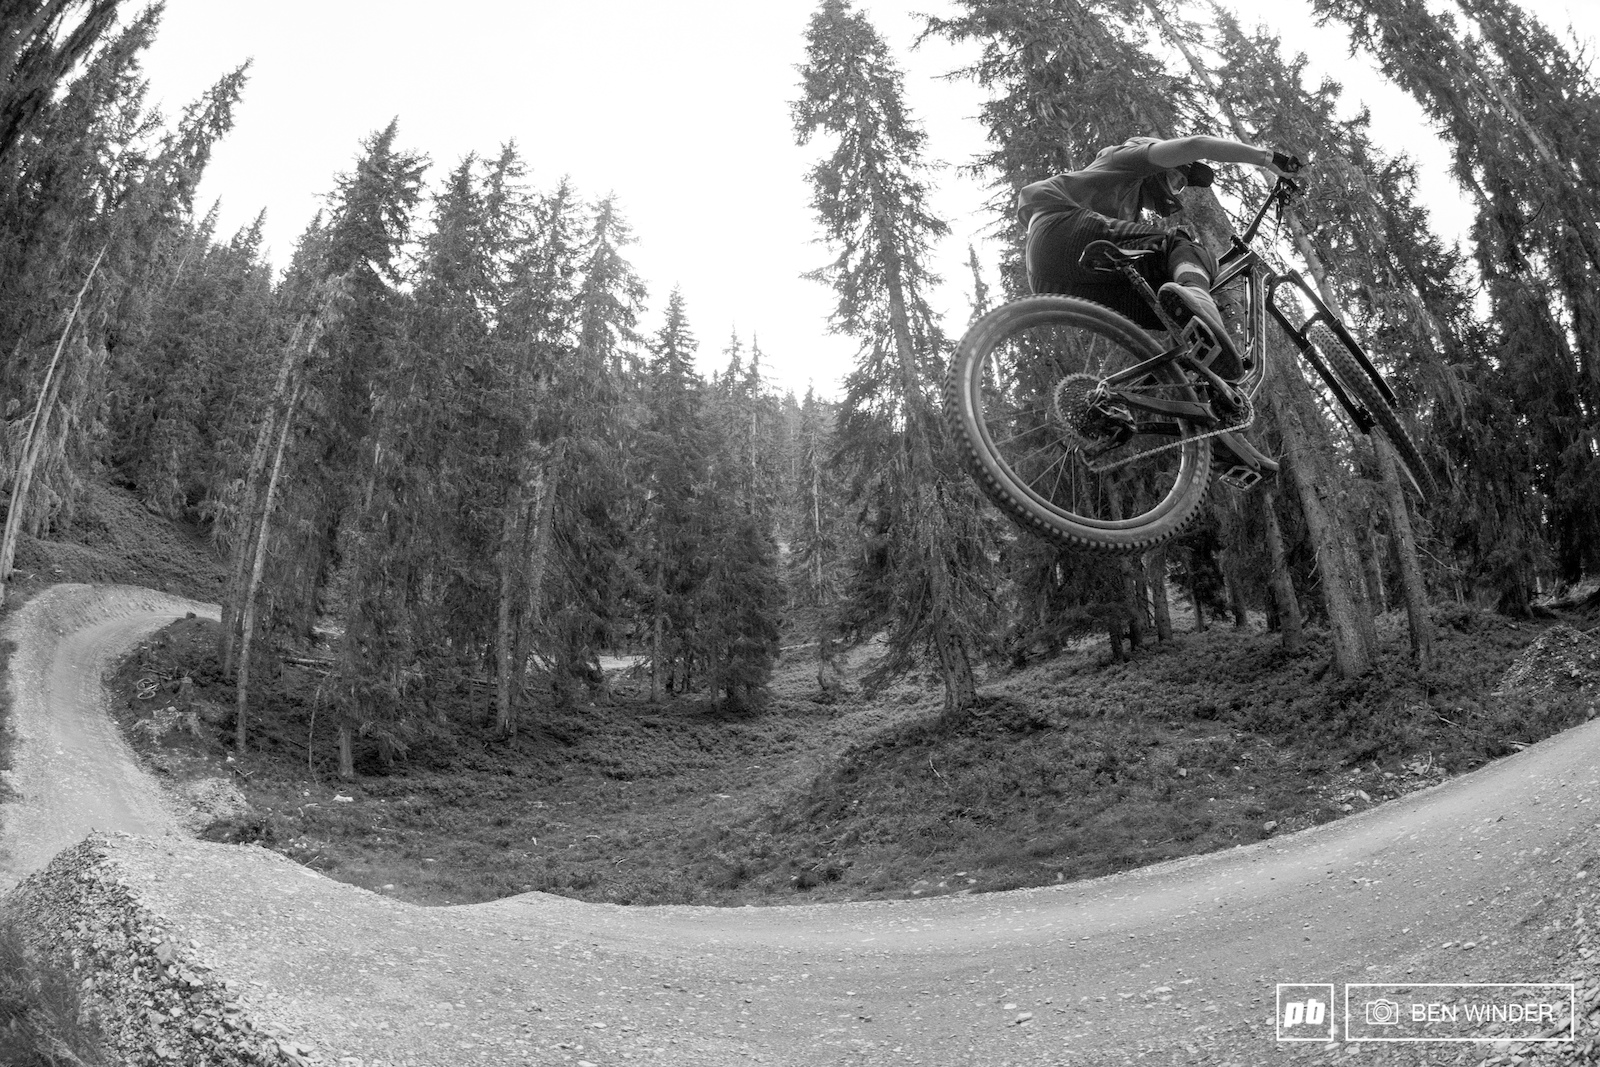 Hot Shots is an easy trail full of tabletop jumps and big berms.